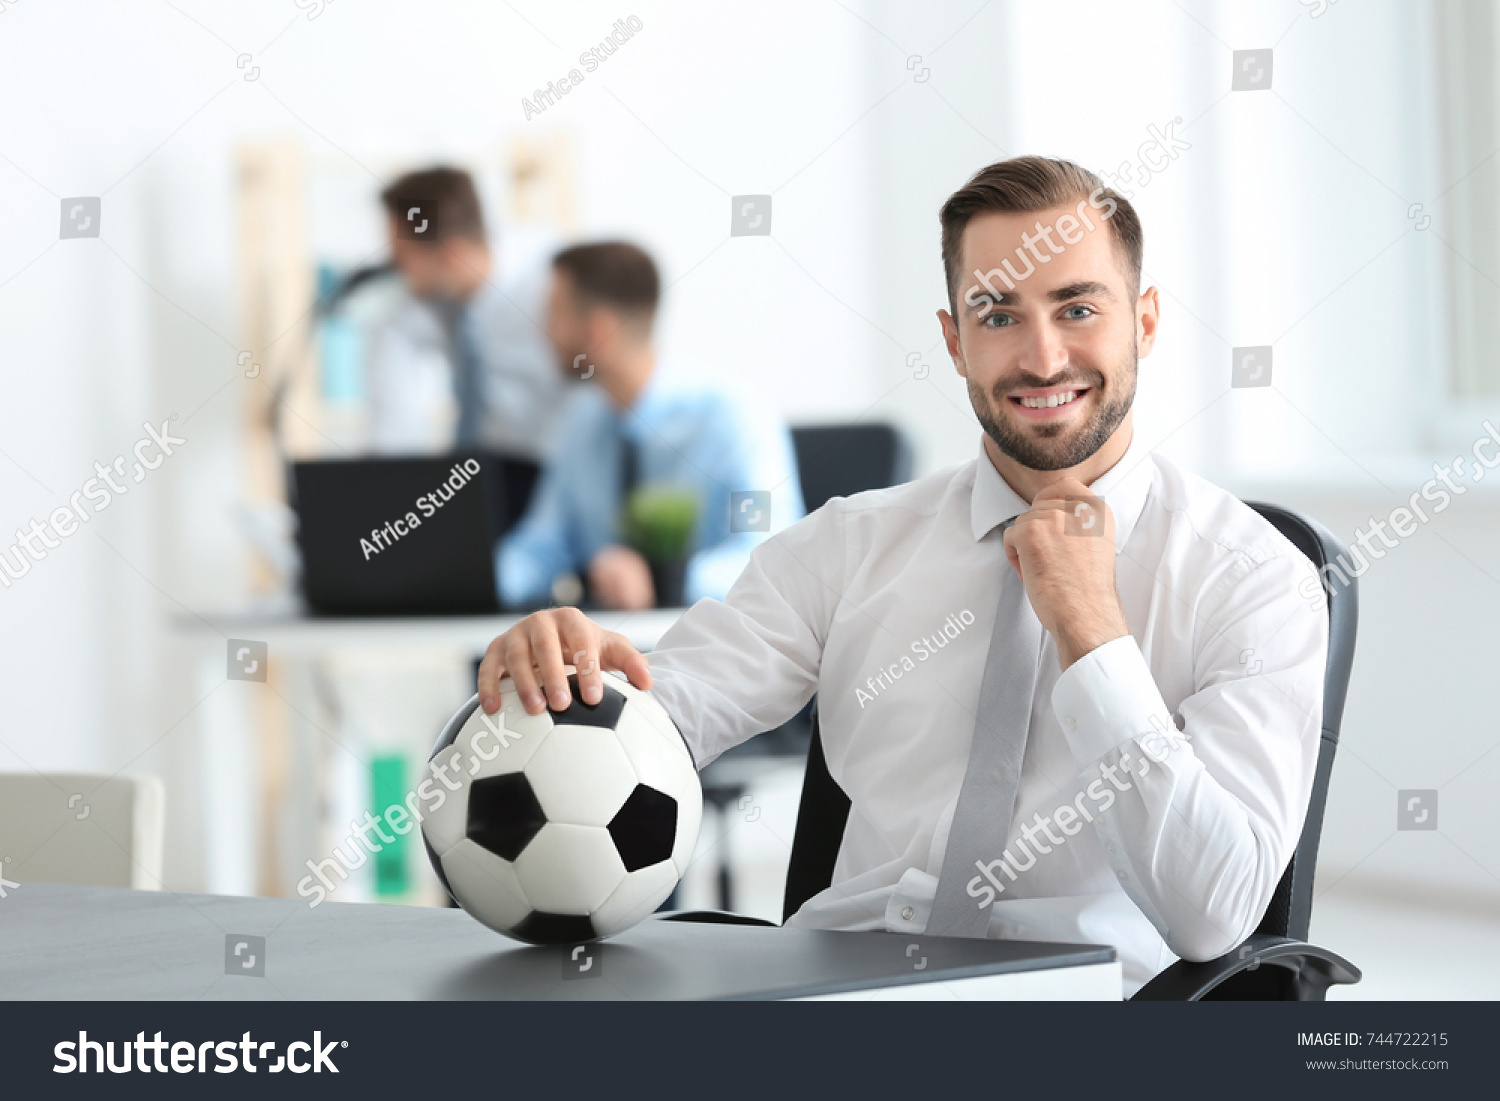 young handsome man soccer ball office stock photo royalty free 744722215 shutterstock